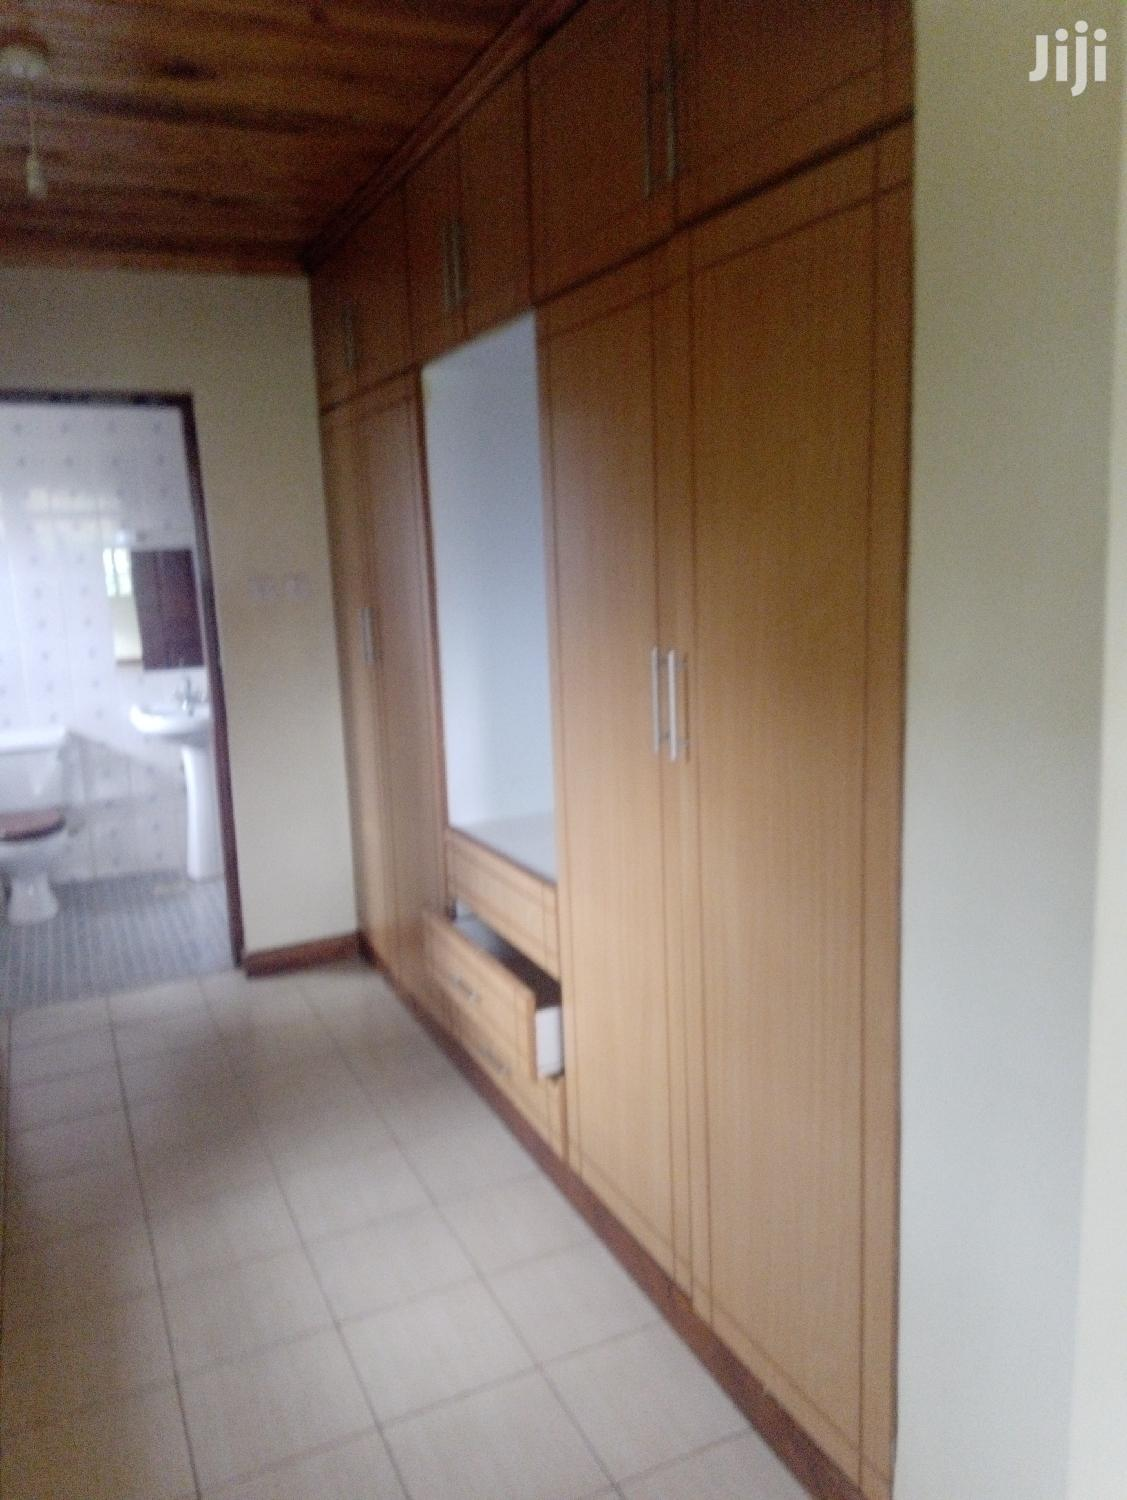 Archive: 4 Bedroom House To Let With SQ Along Kiambu Road